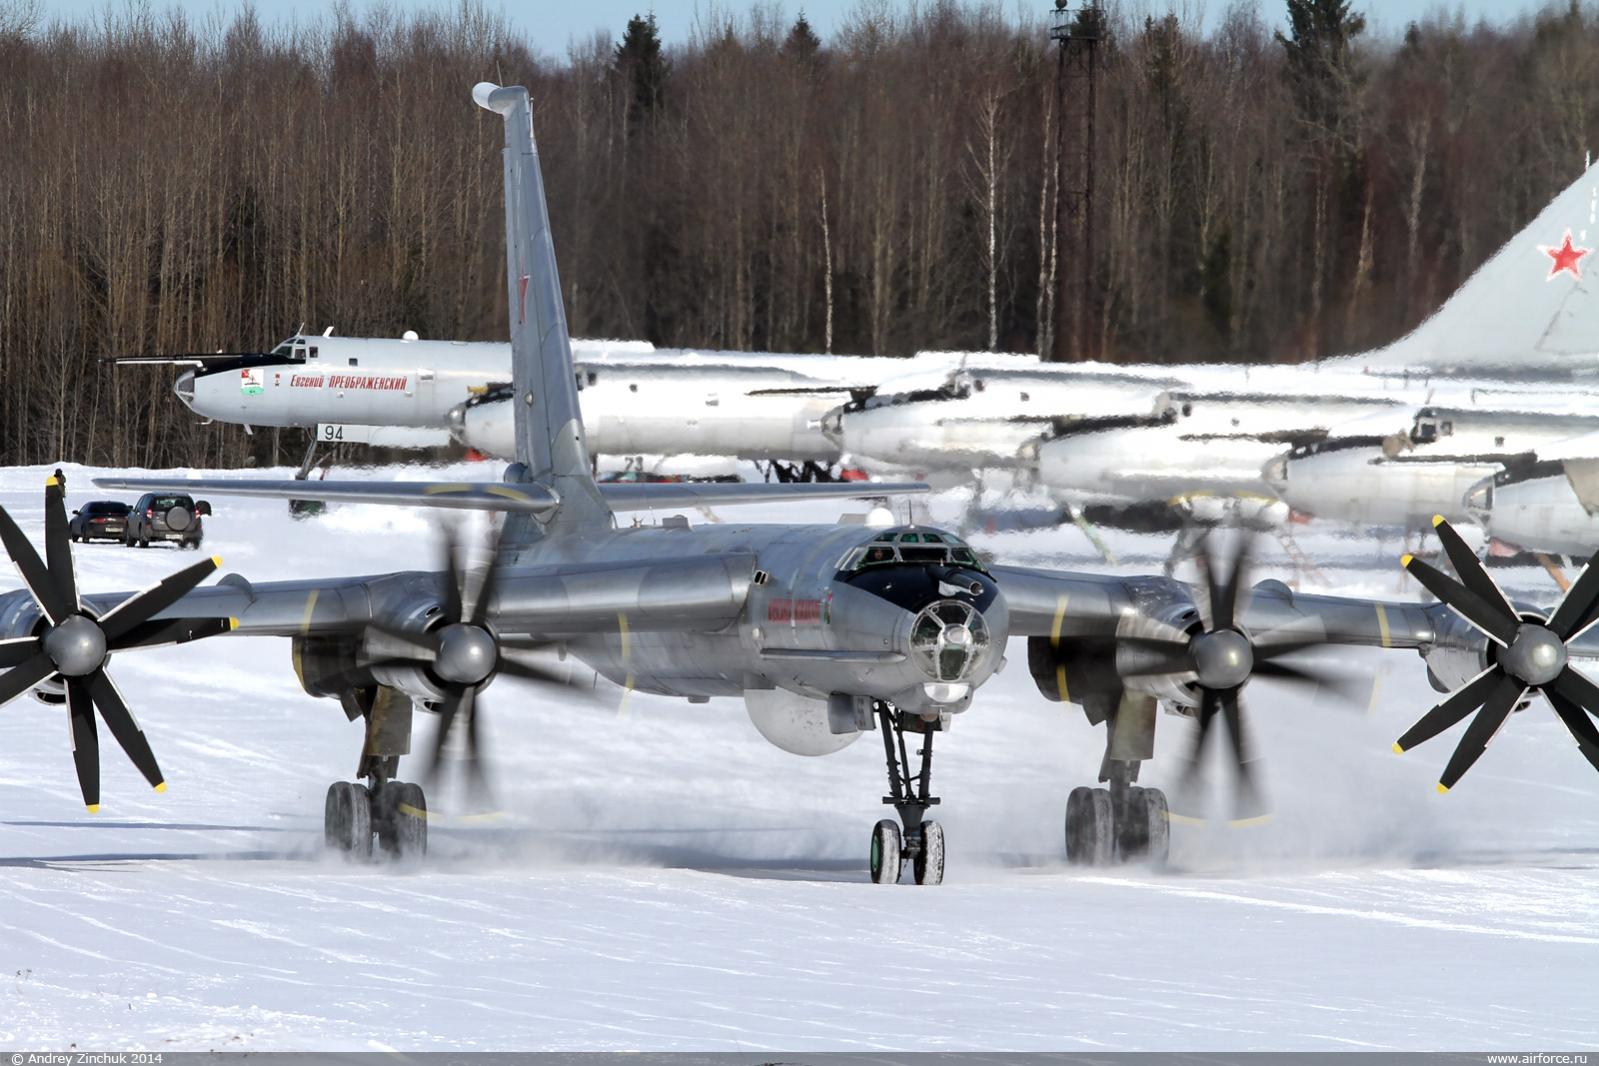 http://www.airforce.ru/content/attachments/53374-52134d1388925972-a_zinchuk_tu-142mk_56_1600.jpg